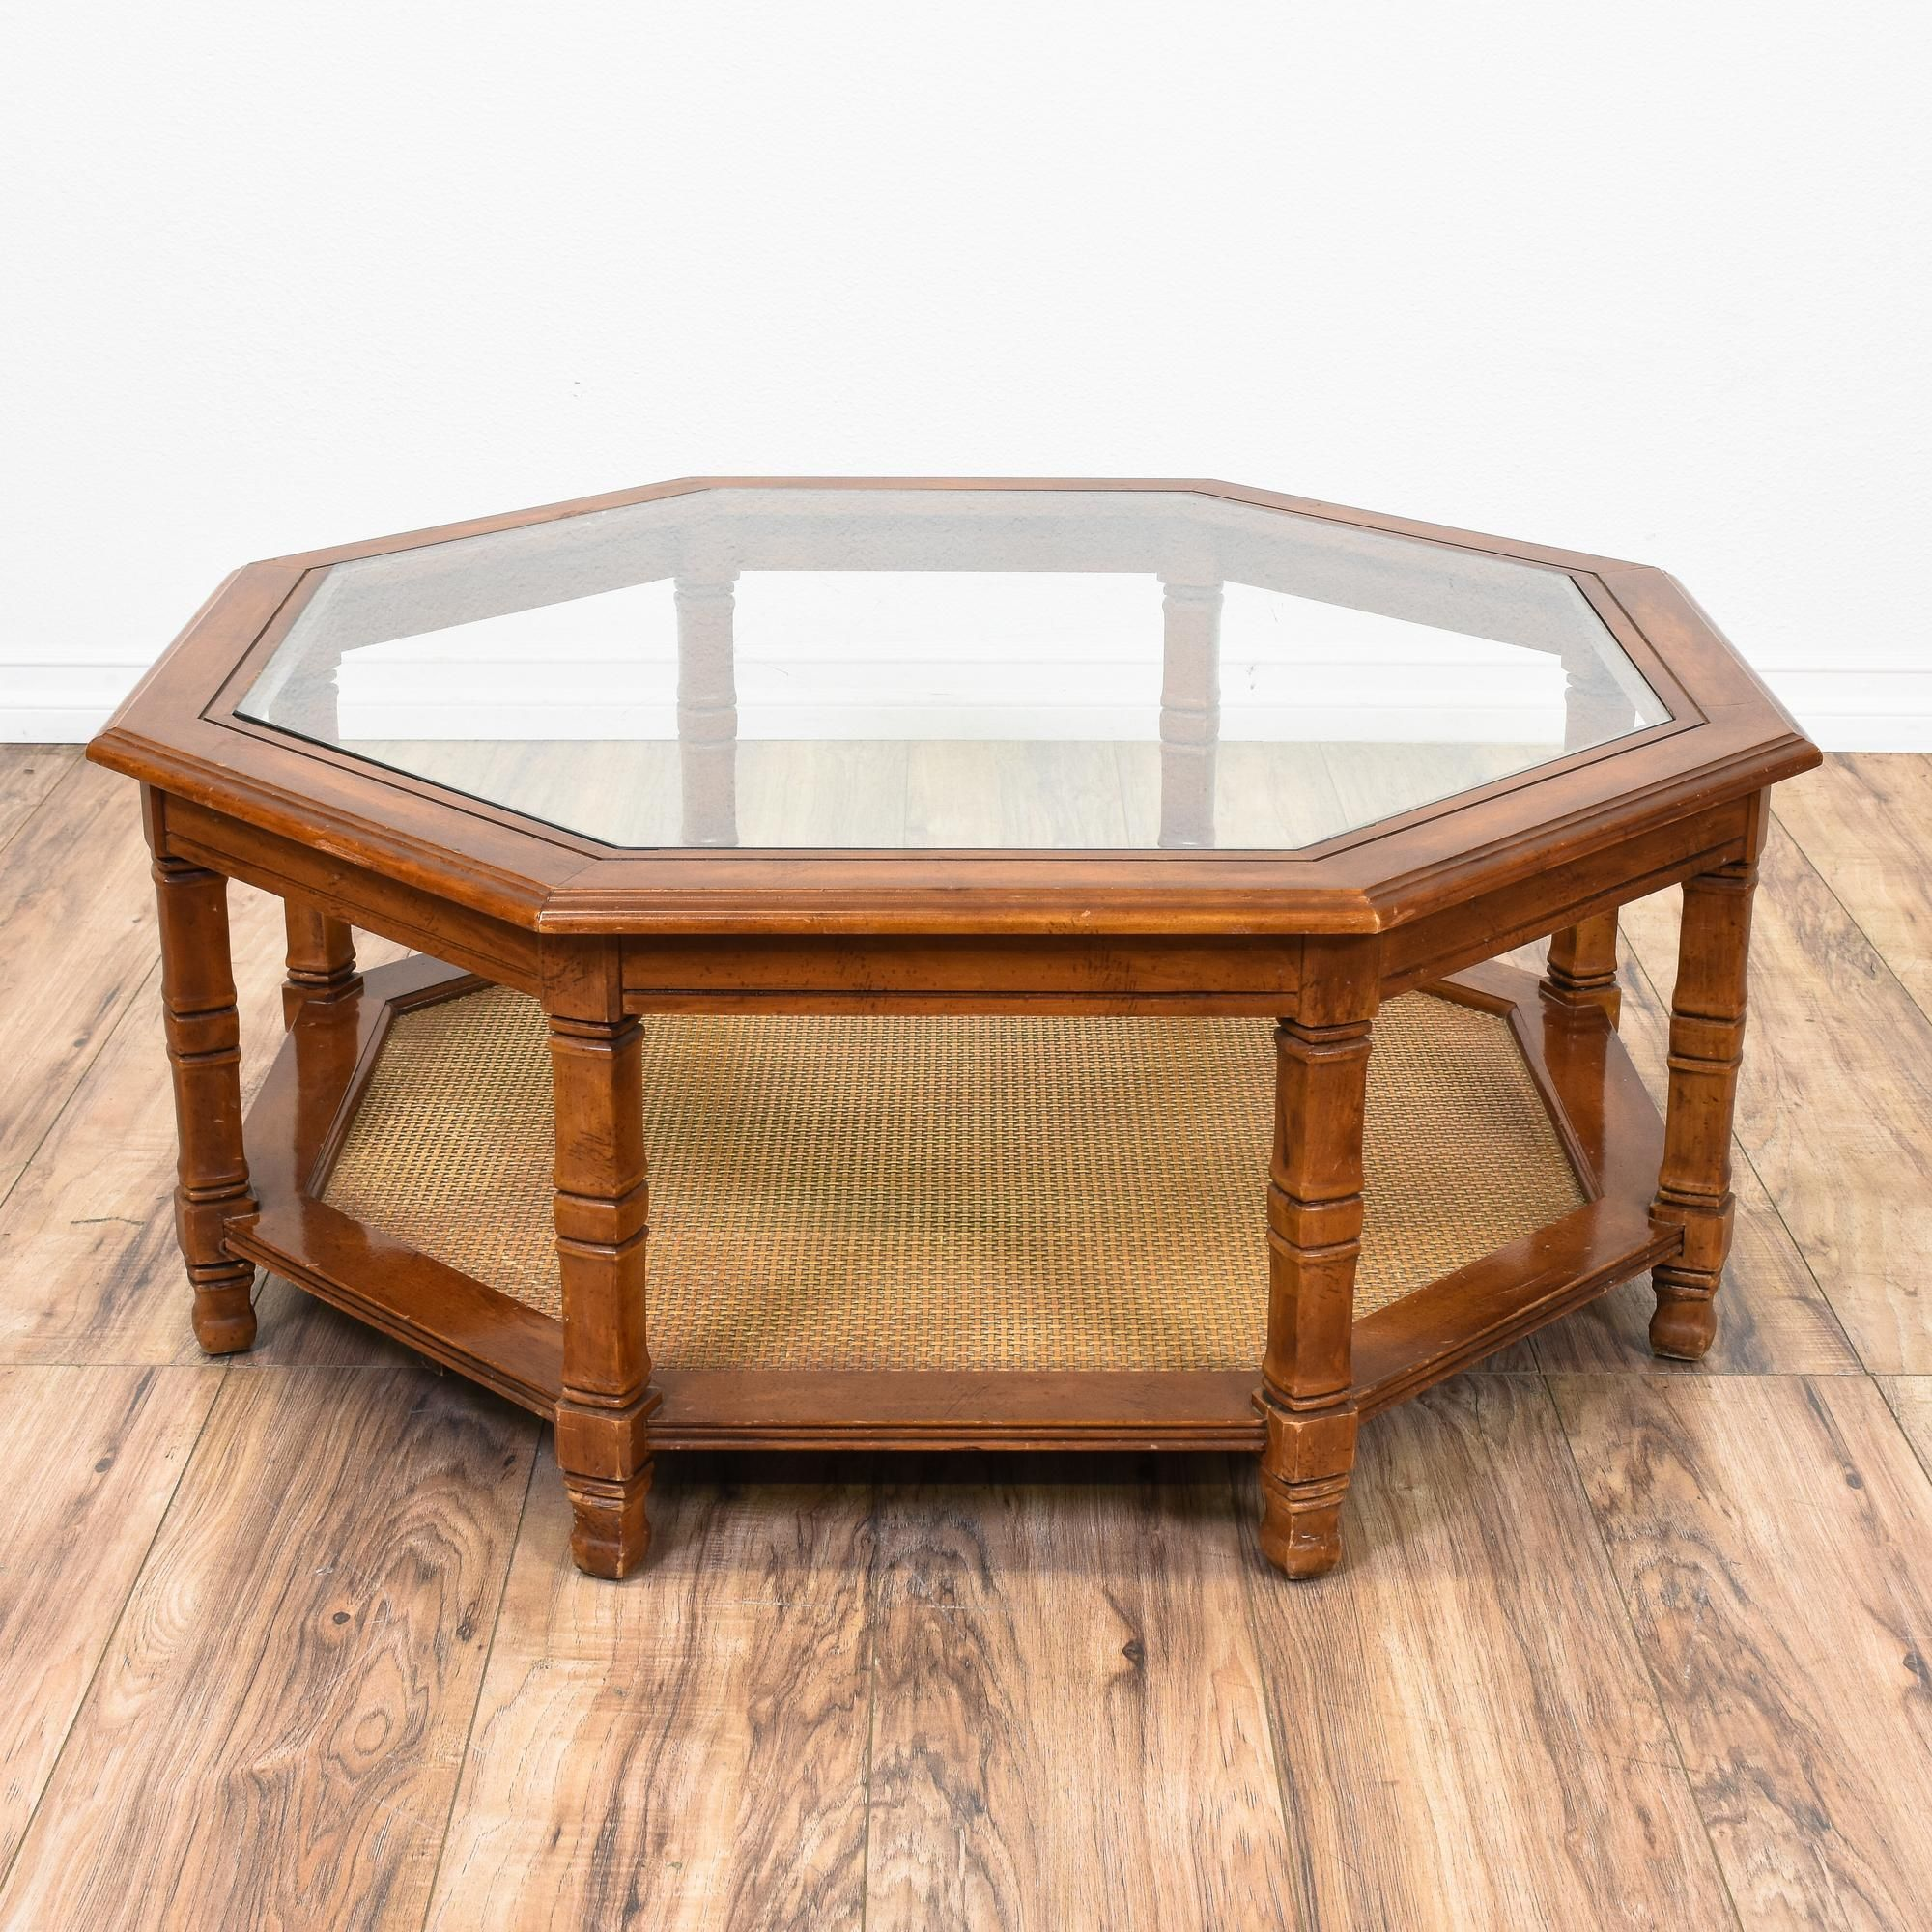 Park Art|My WordPress Blog_Octagon Coffee Table With Glass Top